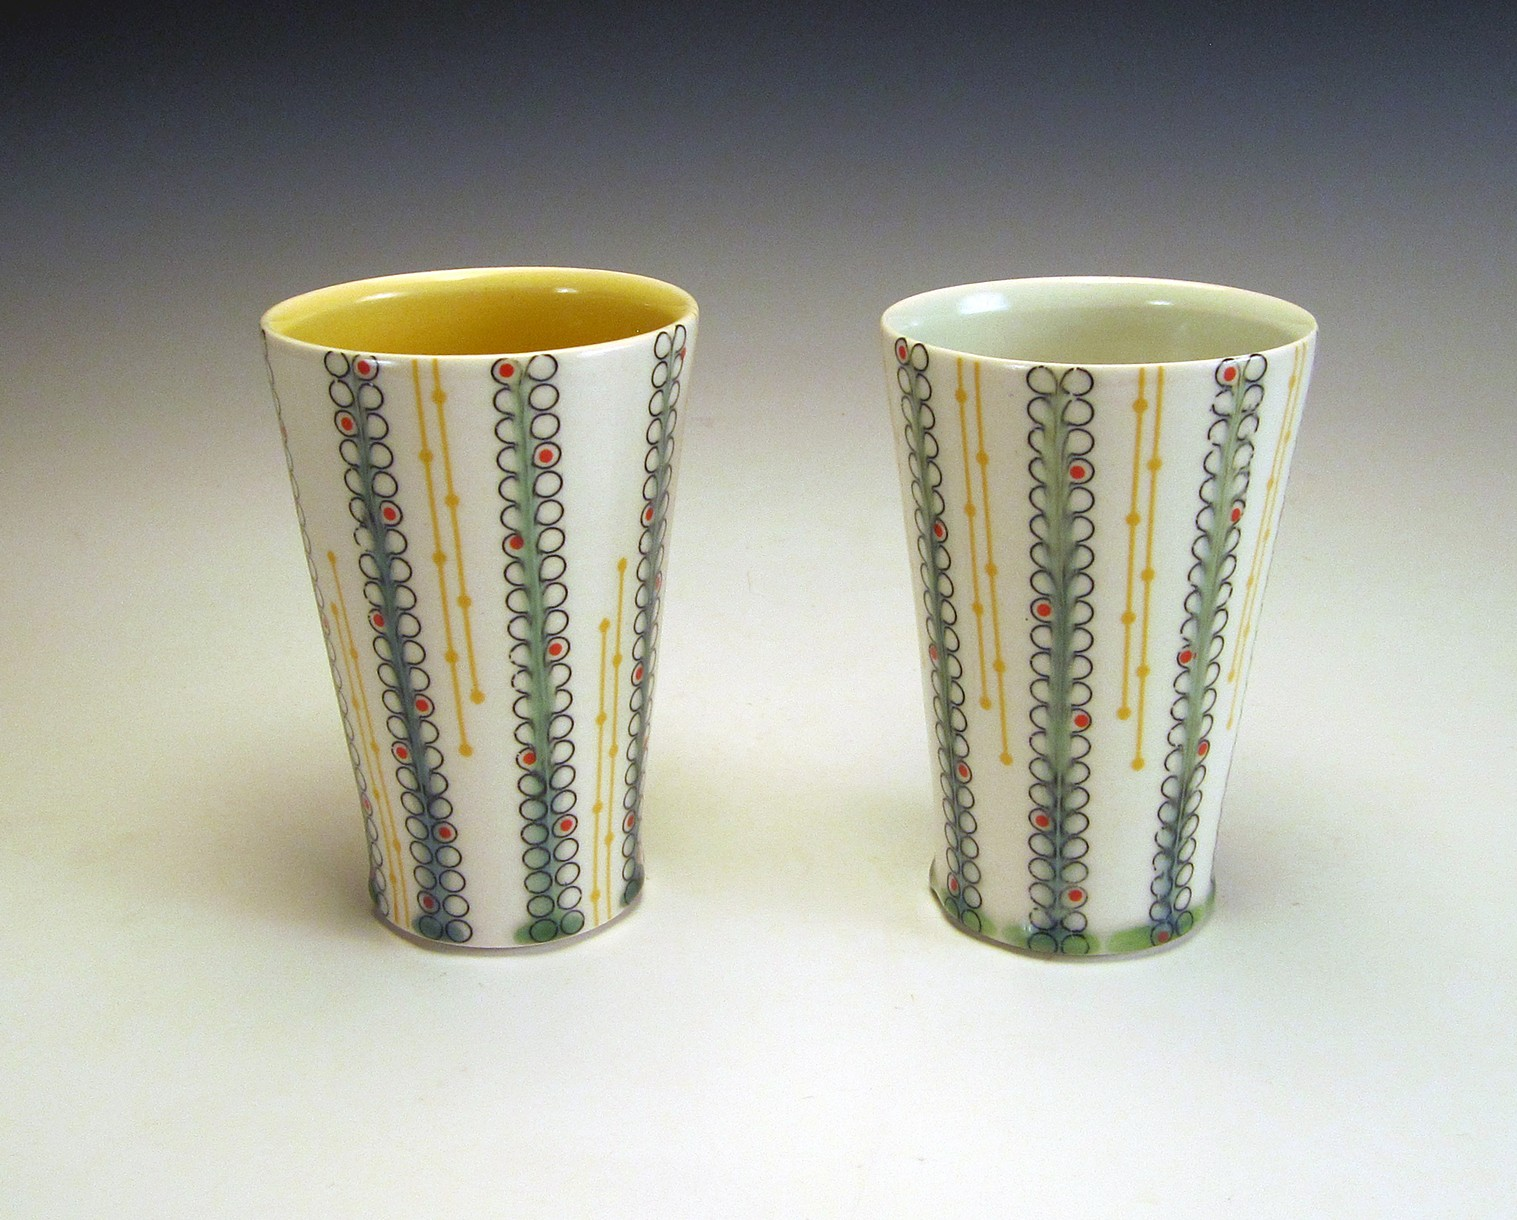 2 thrown porcelain tumblers with underglaze and overglaze decals